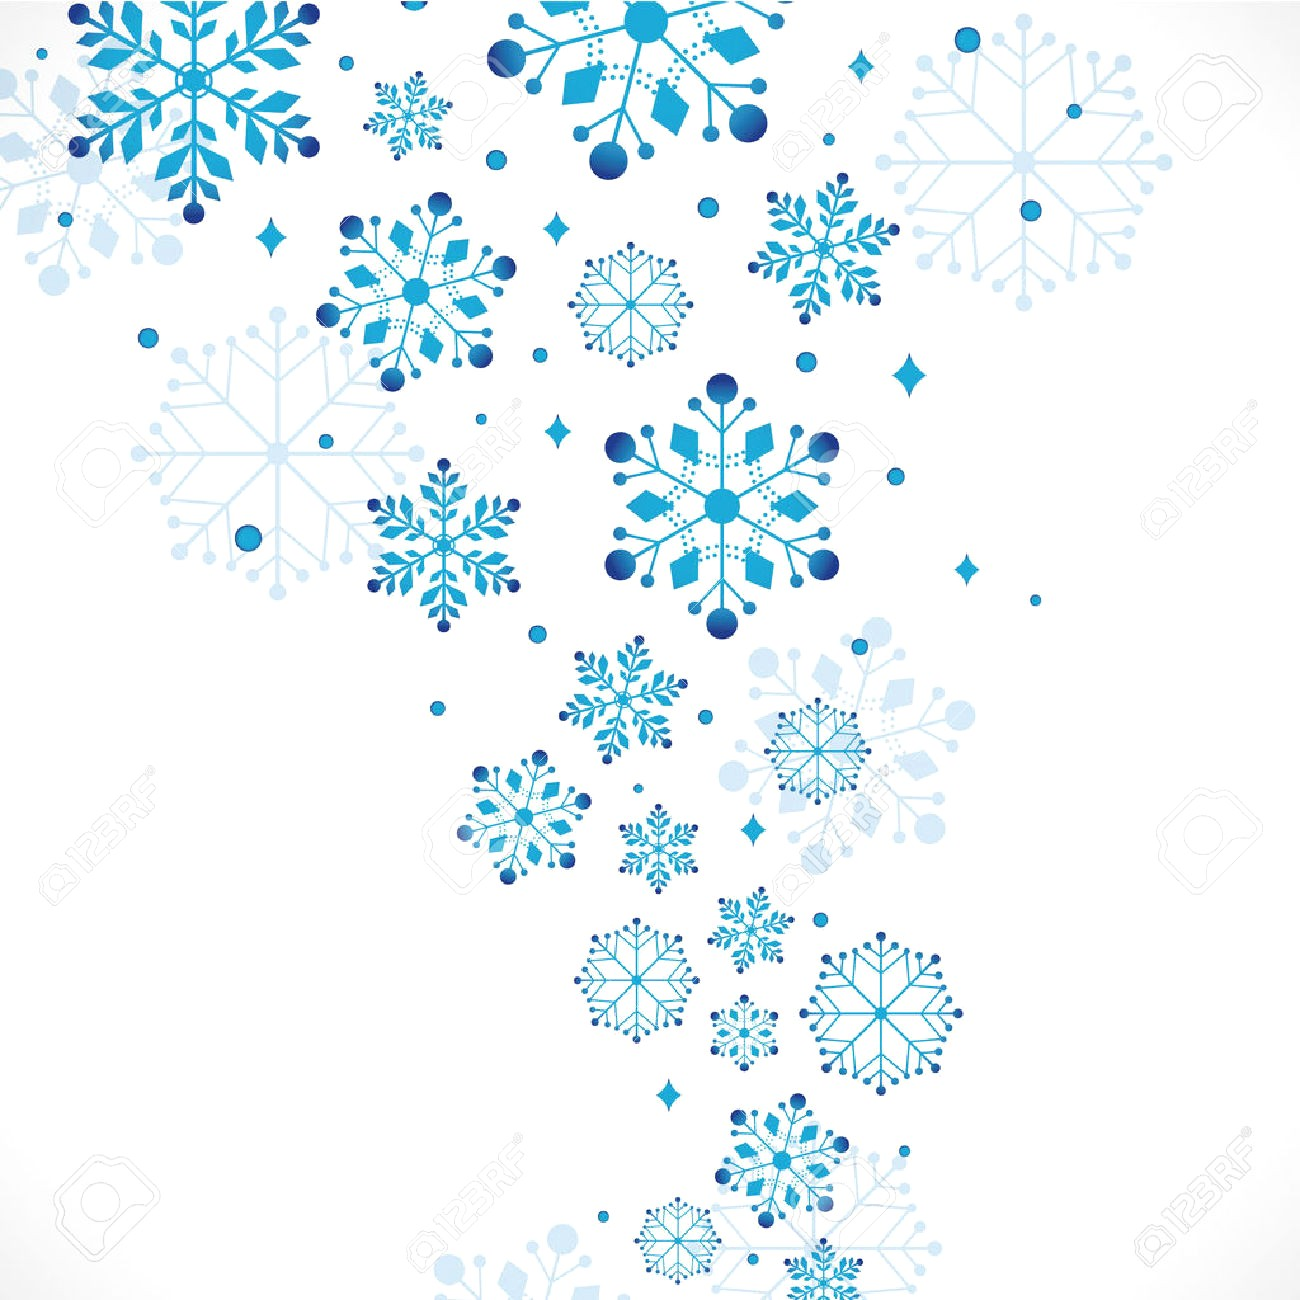 Snowflakes clipart borders 2 » Clipart Station.